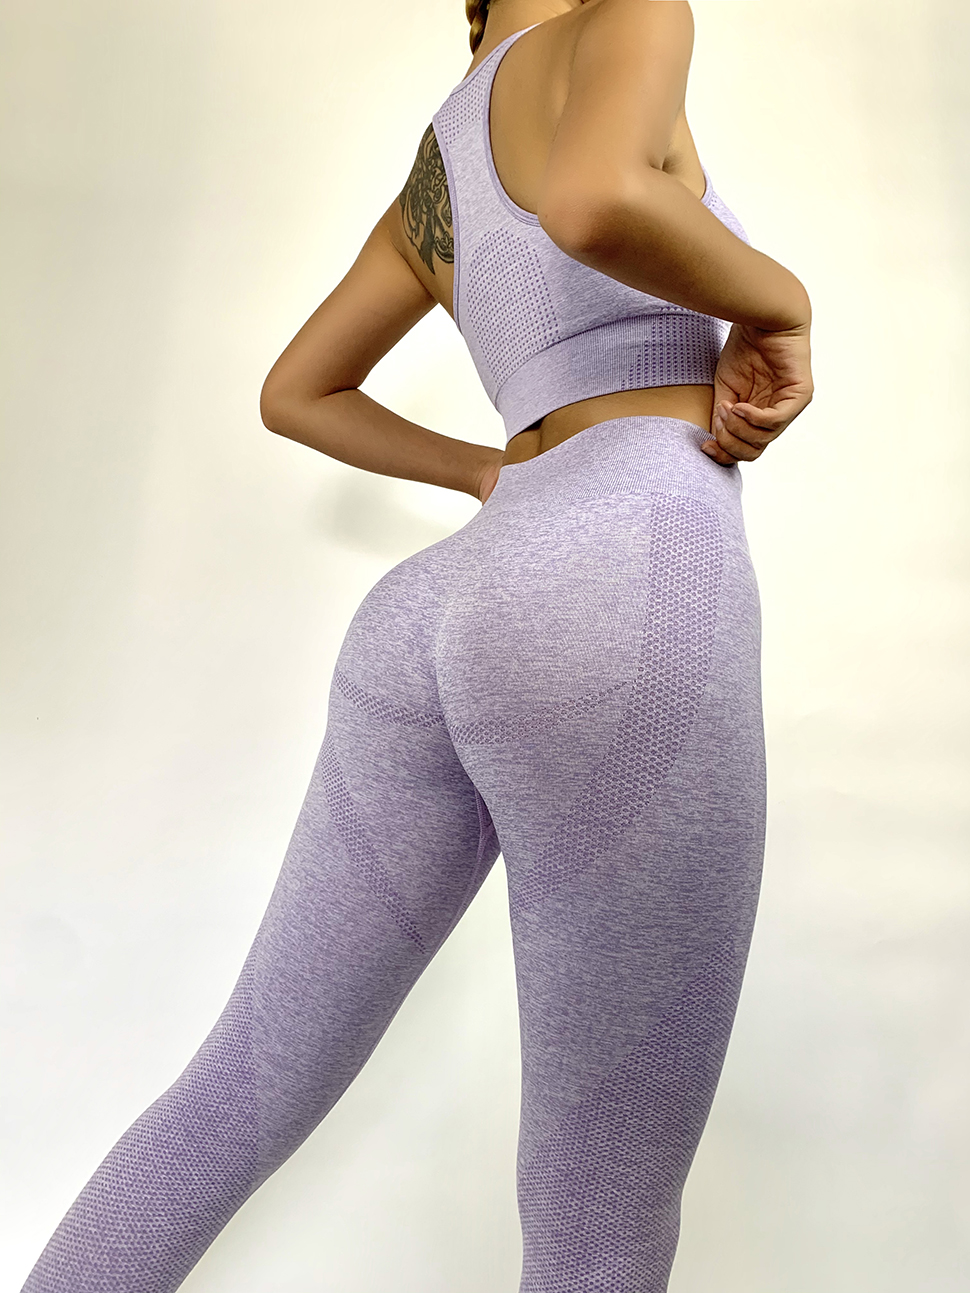 2 Piece Gym Clothing Women Gym Yoga Set Fitness Workout Sets Yoga Bra + Yoga Legging Women's  Sportswear Suit  Yoga Suit Fitness